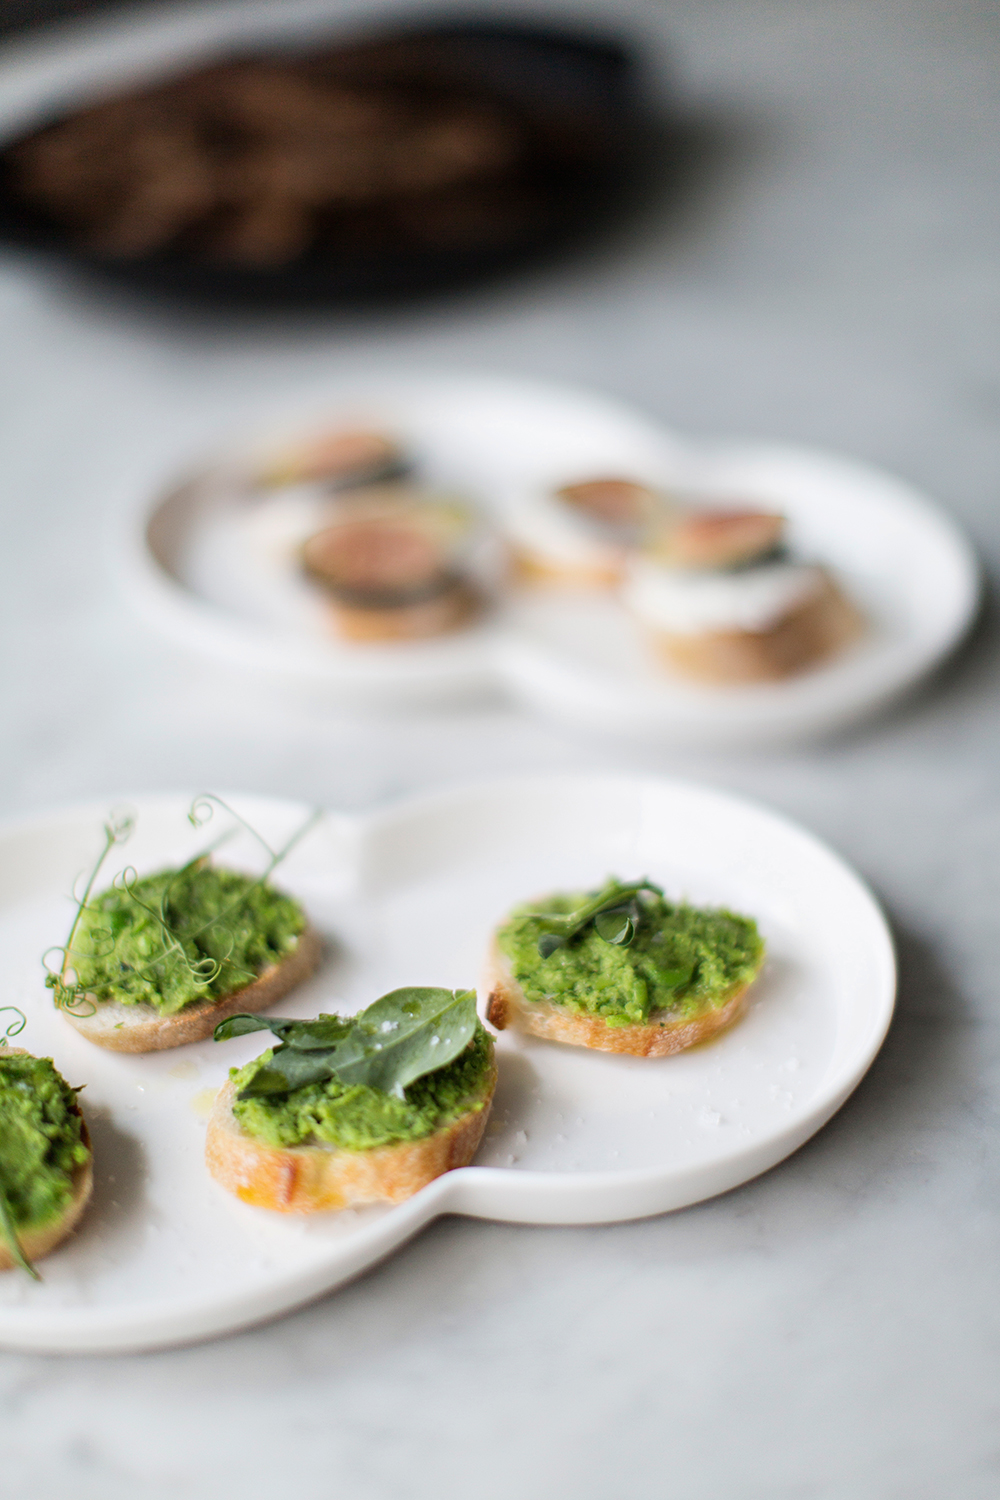 SPRING PEA CROSTINI mint + lemon 3 cups frozen peas 4 - 5 cups of water, salted 1 bunch of spring onions 1 cup fresh mint 4-5 Tablespoons of olive oil Juice of 1/2 a lemon 1 - 2 baguettes  Sea salt and pepper Pea Shoots for garnish   Fill a large bowl with ice water and set aside. In a large pot bring salted water to a boil. Add 3 cups of peas and boil for 2 minutes. drain peas in colander and place immediately in bowl of ice water to stop the cooking process. Set aside. Wash and dry the spring onions and cut them into thin slices. Sauté them in a hot pan with 1 Tbsp olive oil for a few minutes until they are soft but not browning. Wash the mint carefully and pick the leaves of the stems. Place the peas, spring onions, fresh mint, 3-4 spoons of olive oil and lemon juice in a blender and pulse until just blended. We prefer there peas to have a little texture so be careful not to over blend the puree. Season with salt, pepper and lemon to taste. If a smoother puree is desired then add a few teaspoons of olive oil until mixture is of desired consistency. Preheat the oven to 350 degrees. Cut the bread into slices 1 inch thick. Drizzle generously with olive oil and arrange on a baking sheet. Toast the bread for 3-5minutes. Remove from oven and set aside to cool. To serve, spread 1 tablespoon of puree over each slice of bread. Garnish with pea shoots and sprinkle with flaky sea salt and olive oil to taste.   Photo + Styling | Karen Mordechai Recipe | Rikke Storm